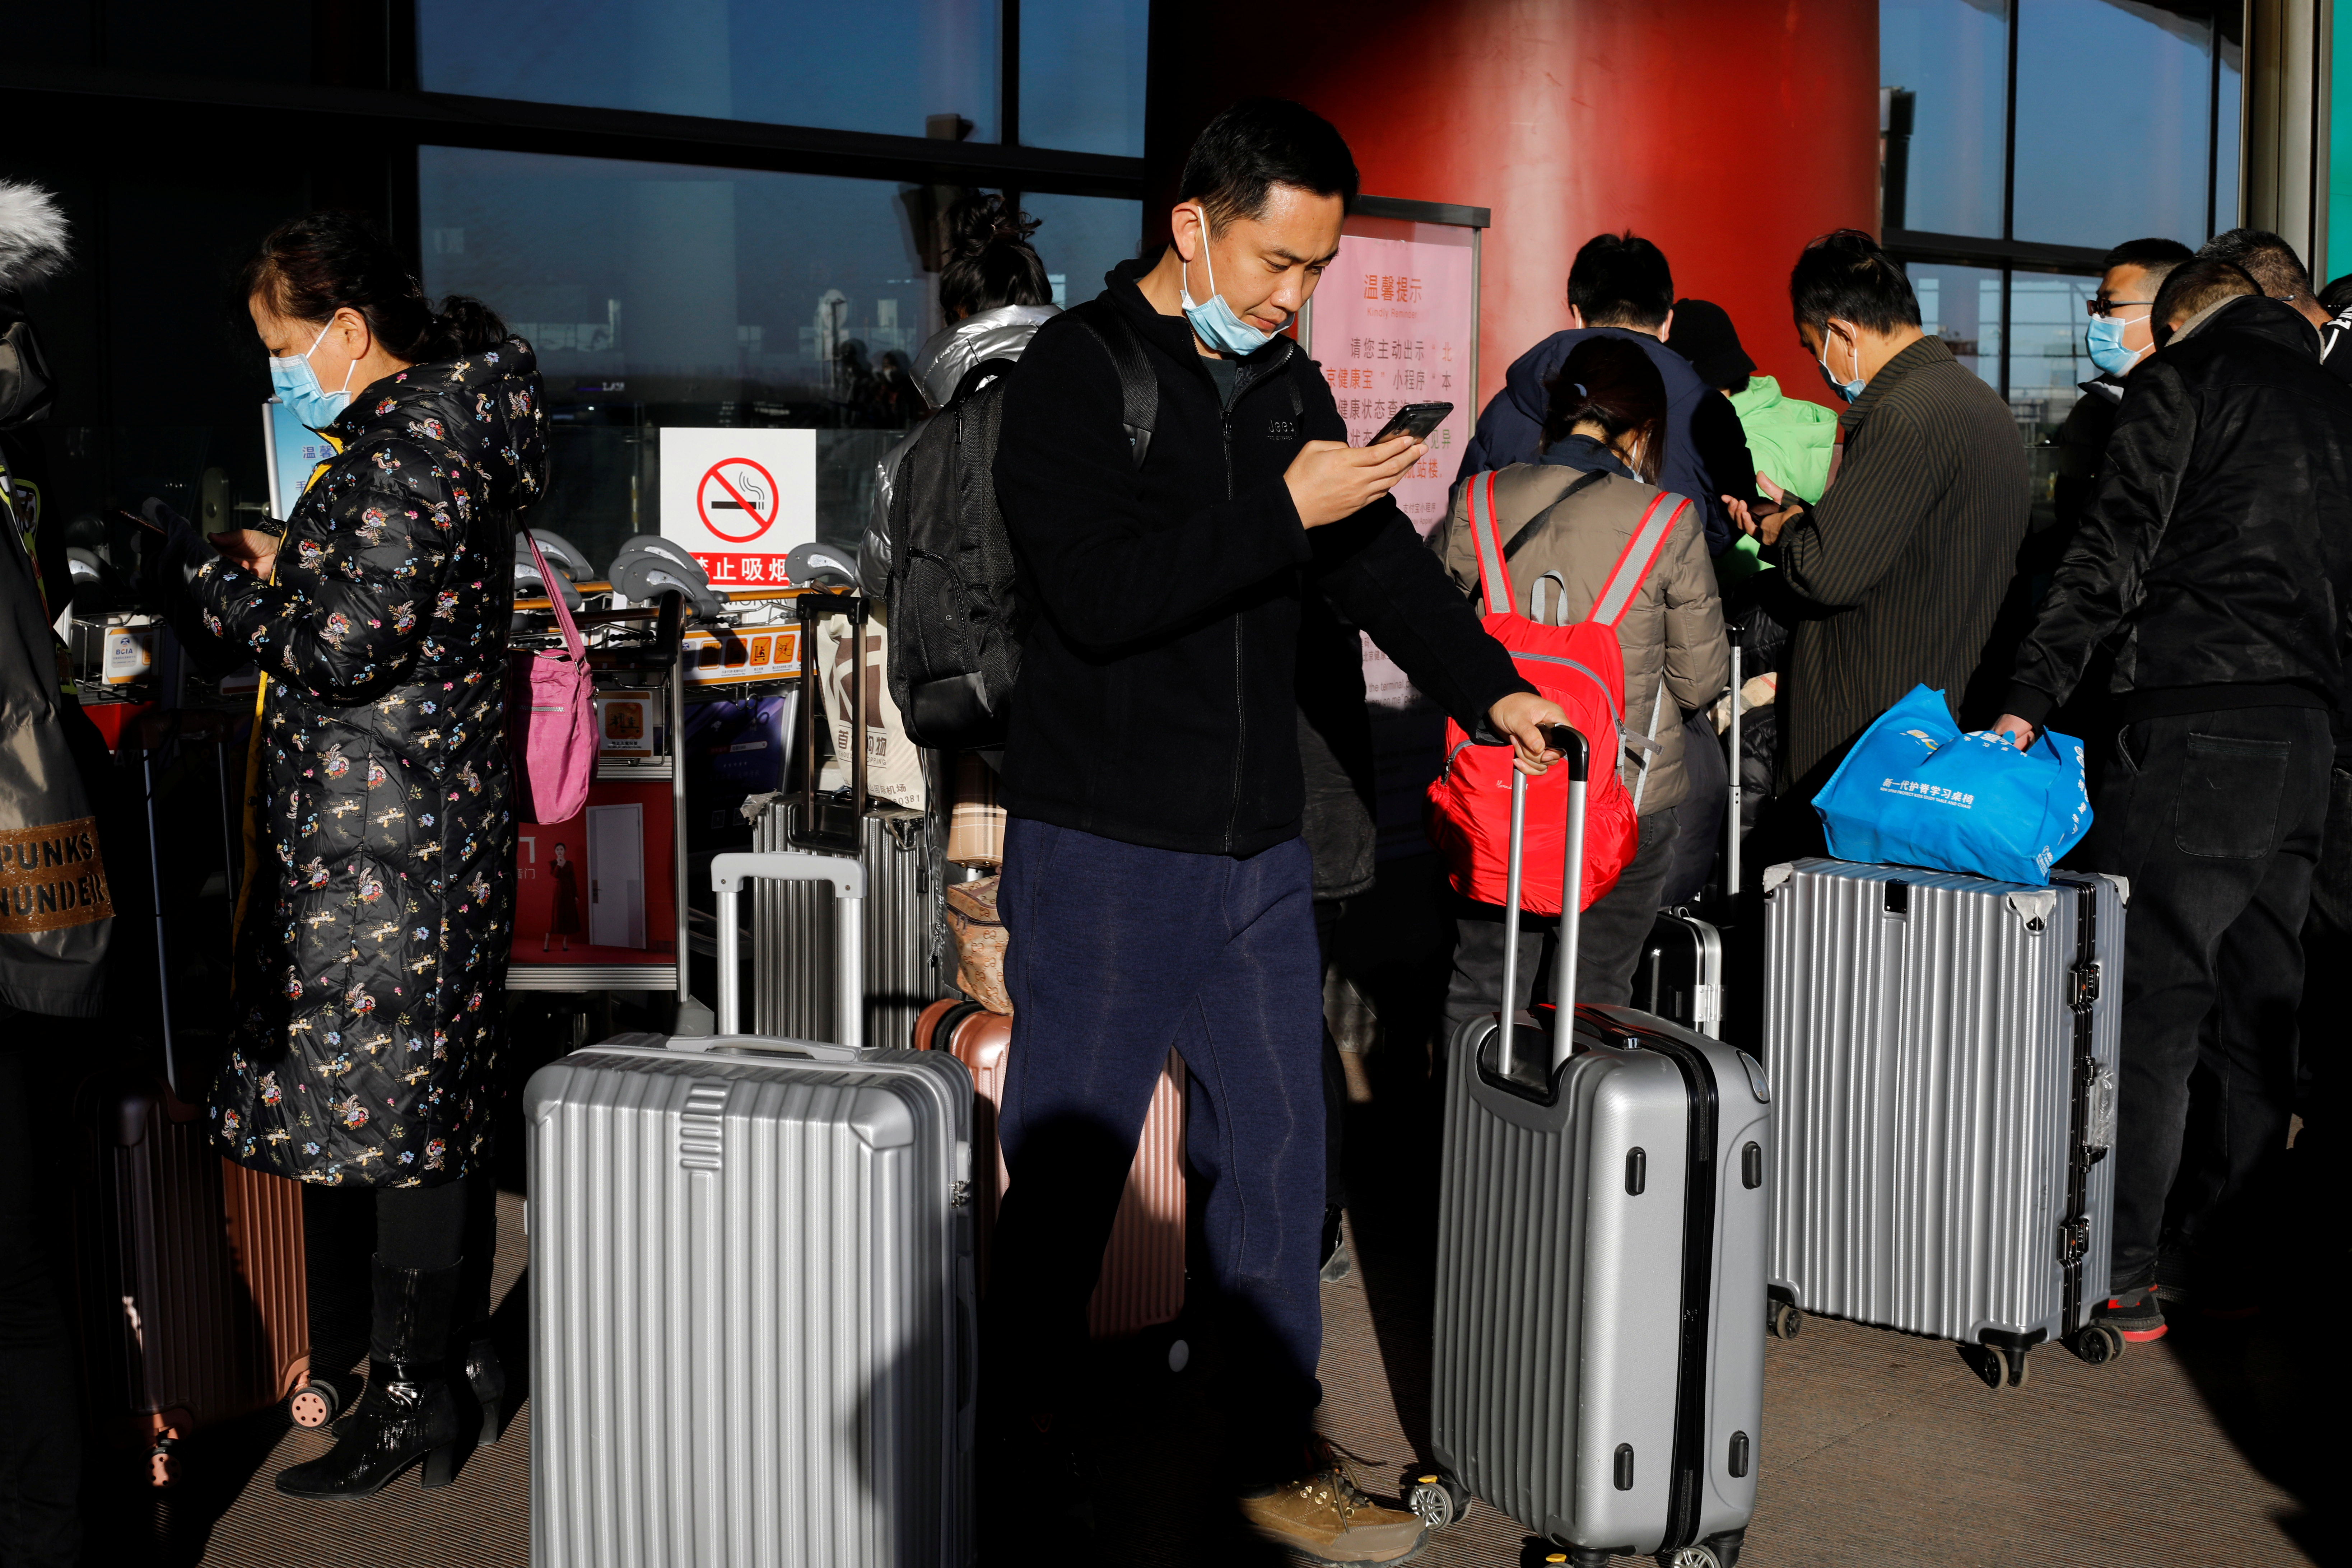 Travellers arrive with their luggage at the Beijing Capital International Airport following the coronavirus disease (COVID-19) outbreak in Beijing, China December 30, 2020. REUTERS/Tingshu Wang